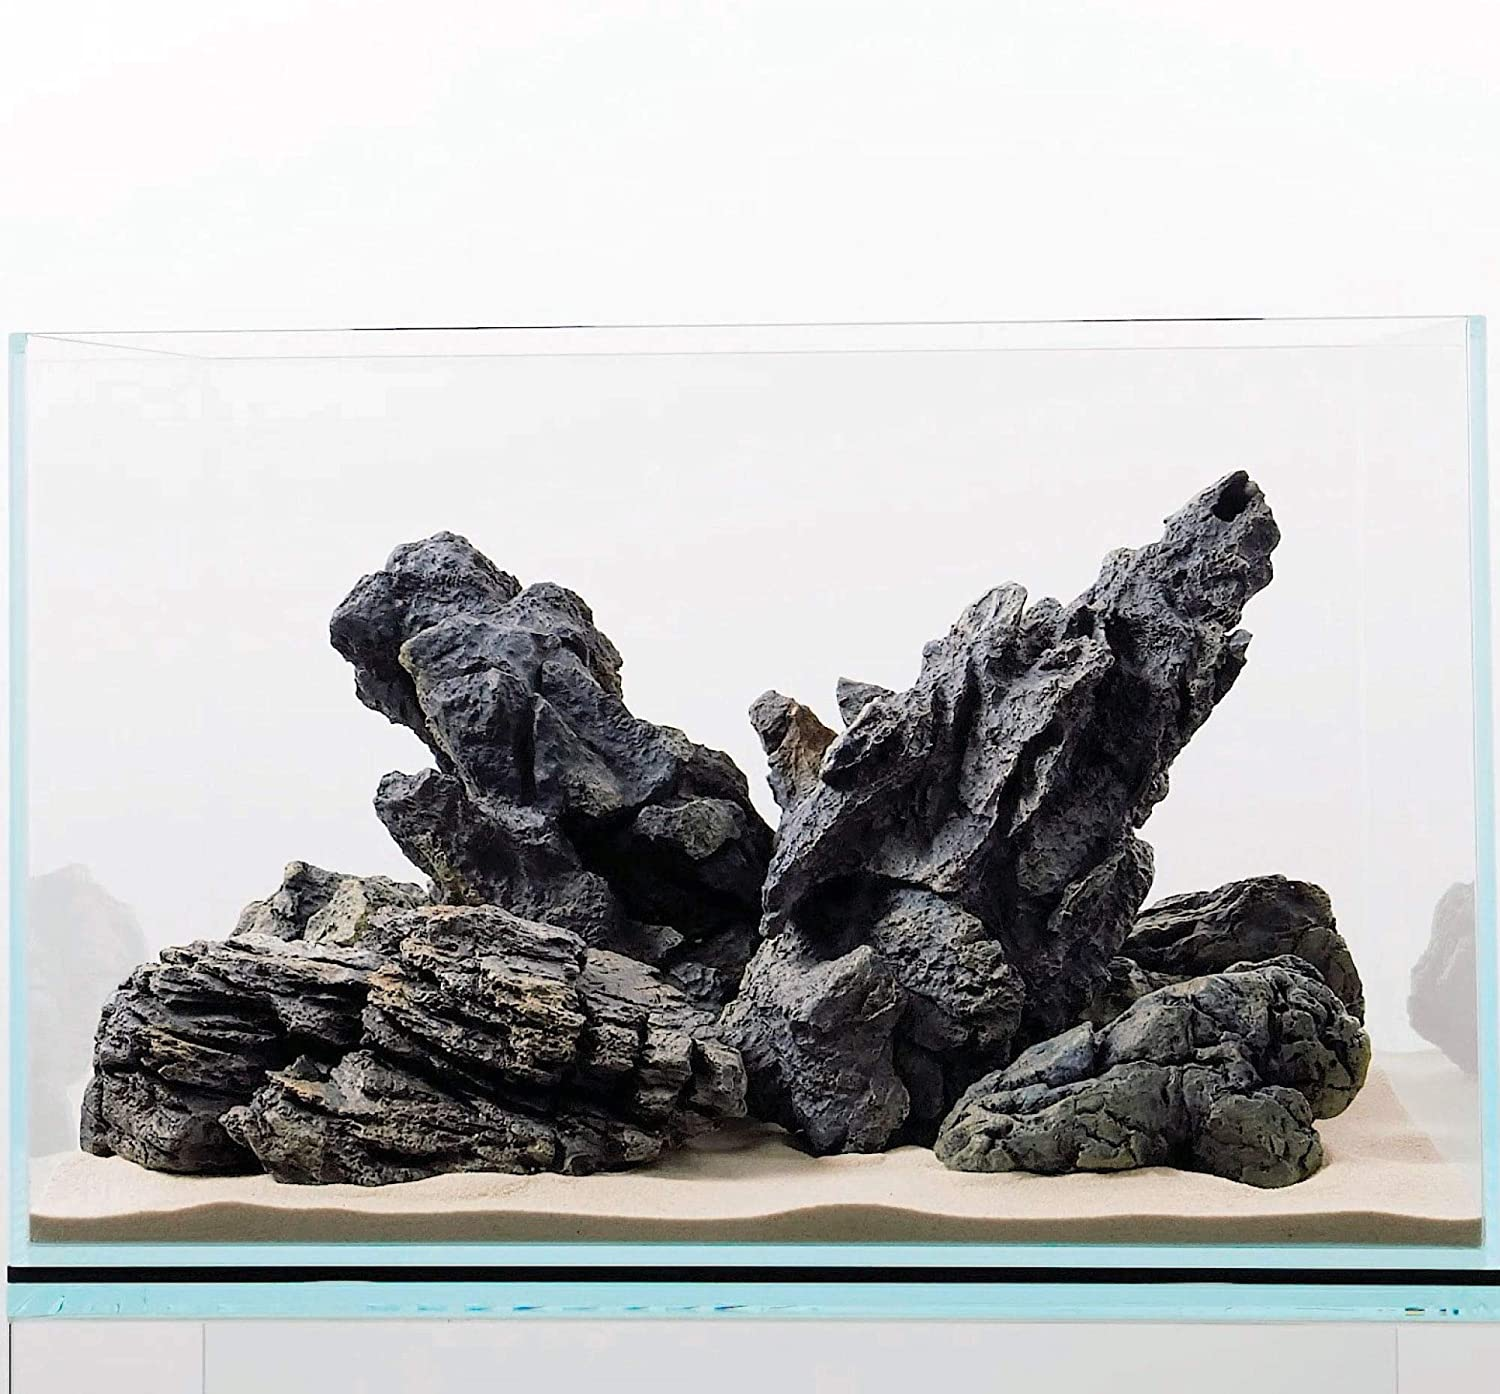 "CURRENT USA Seiryu Stone Collection 7-11 Pieces | Molded Aquarium Decor for up to 48"" Aquariums 